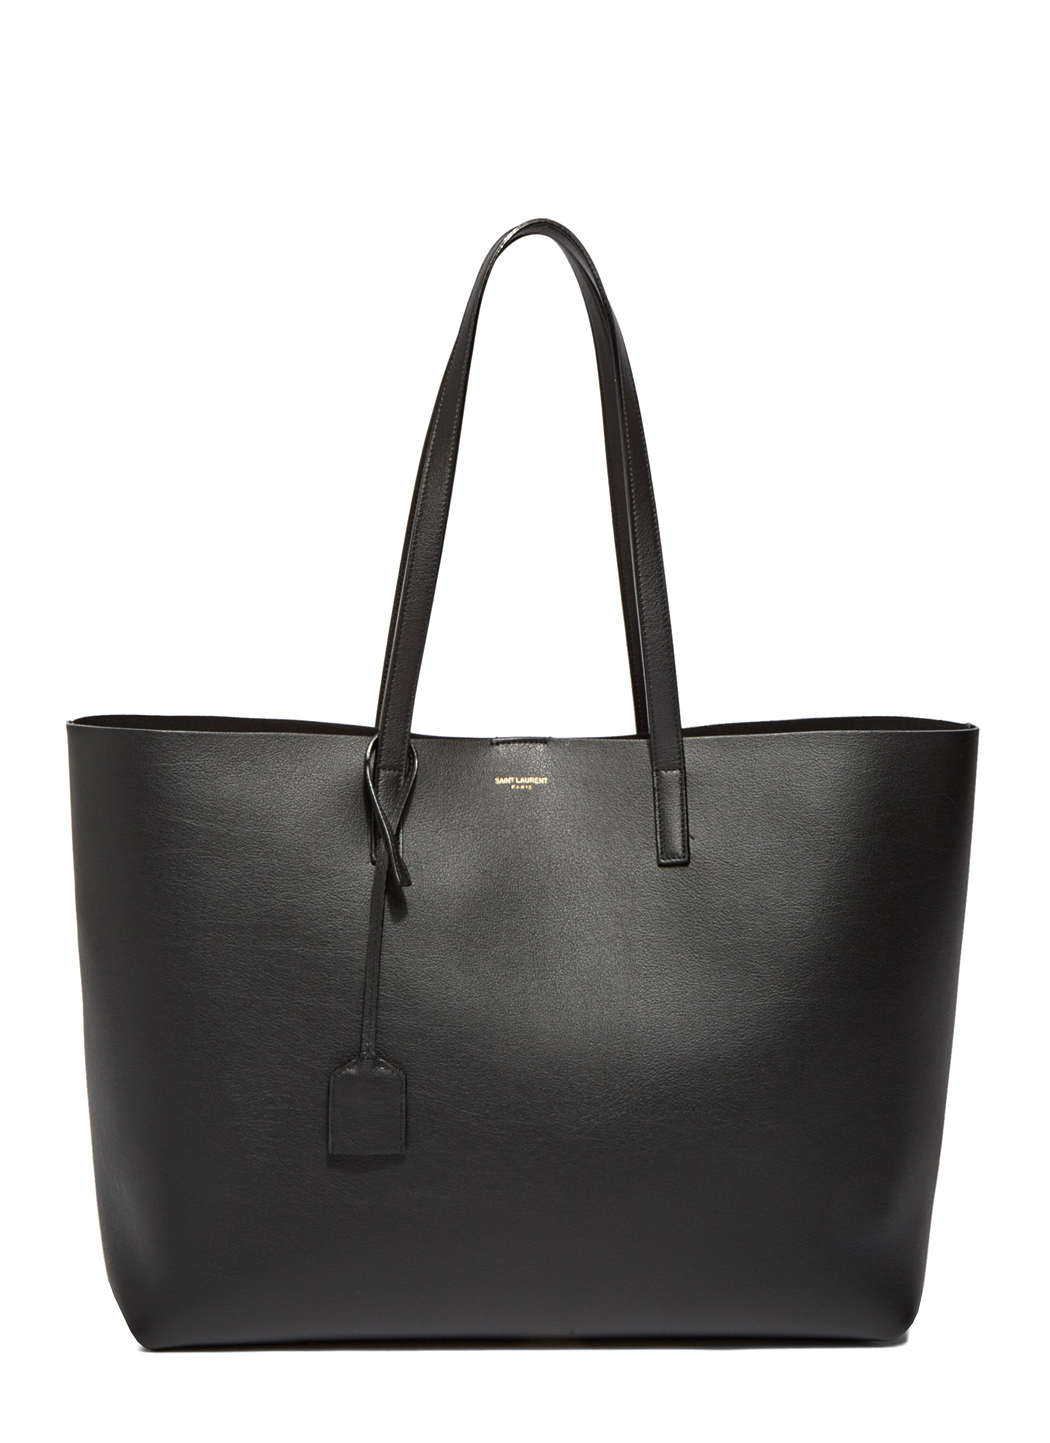 Saint laurent Large Shopper Tote Bag in Black | Lyst